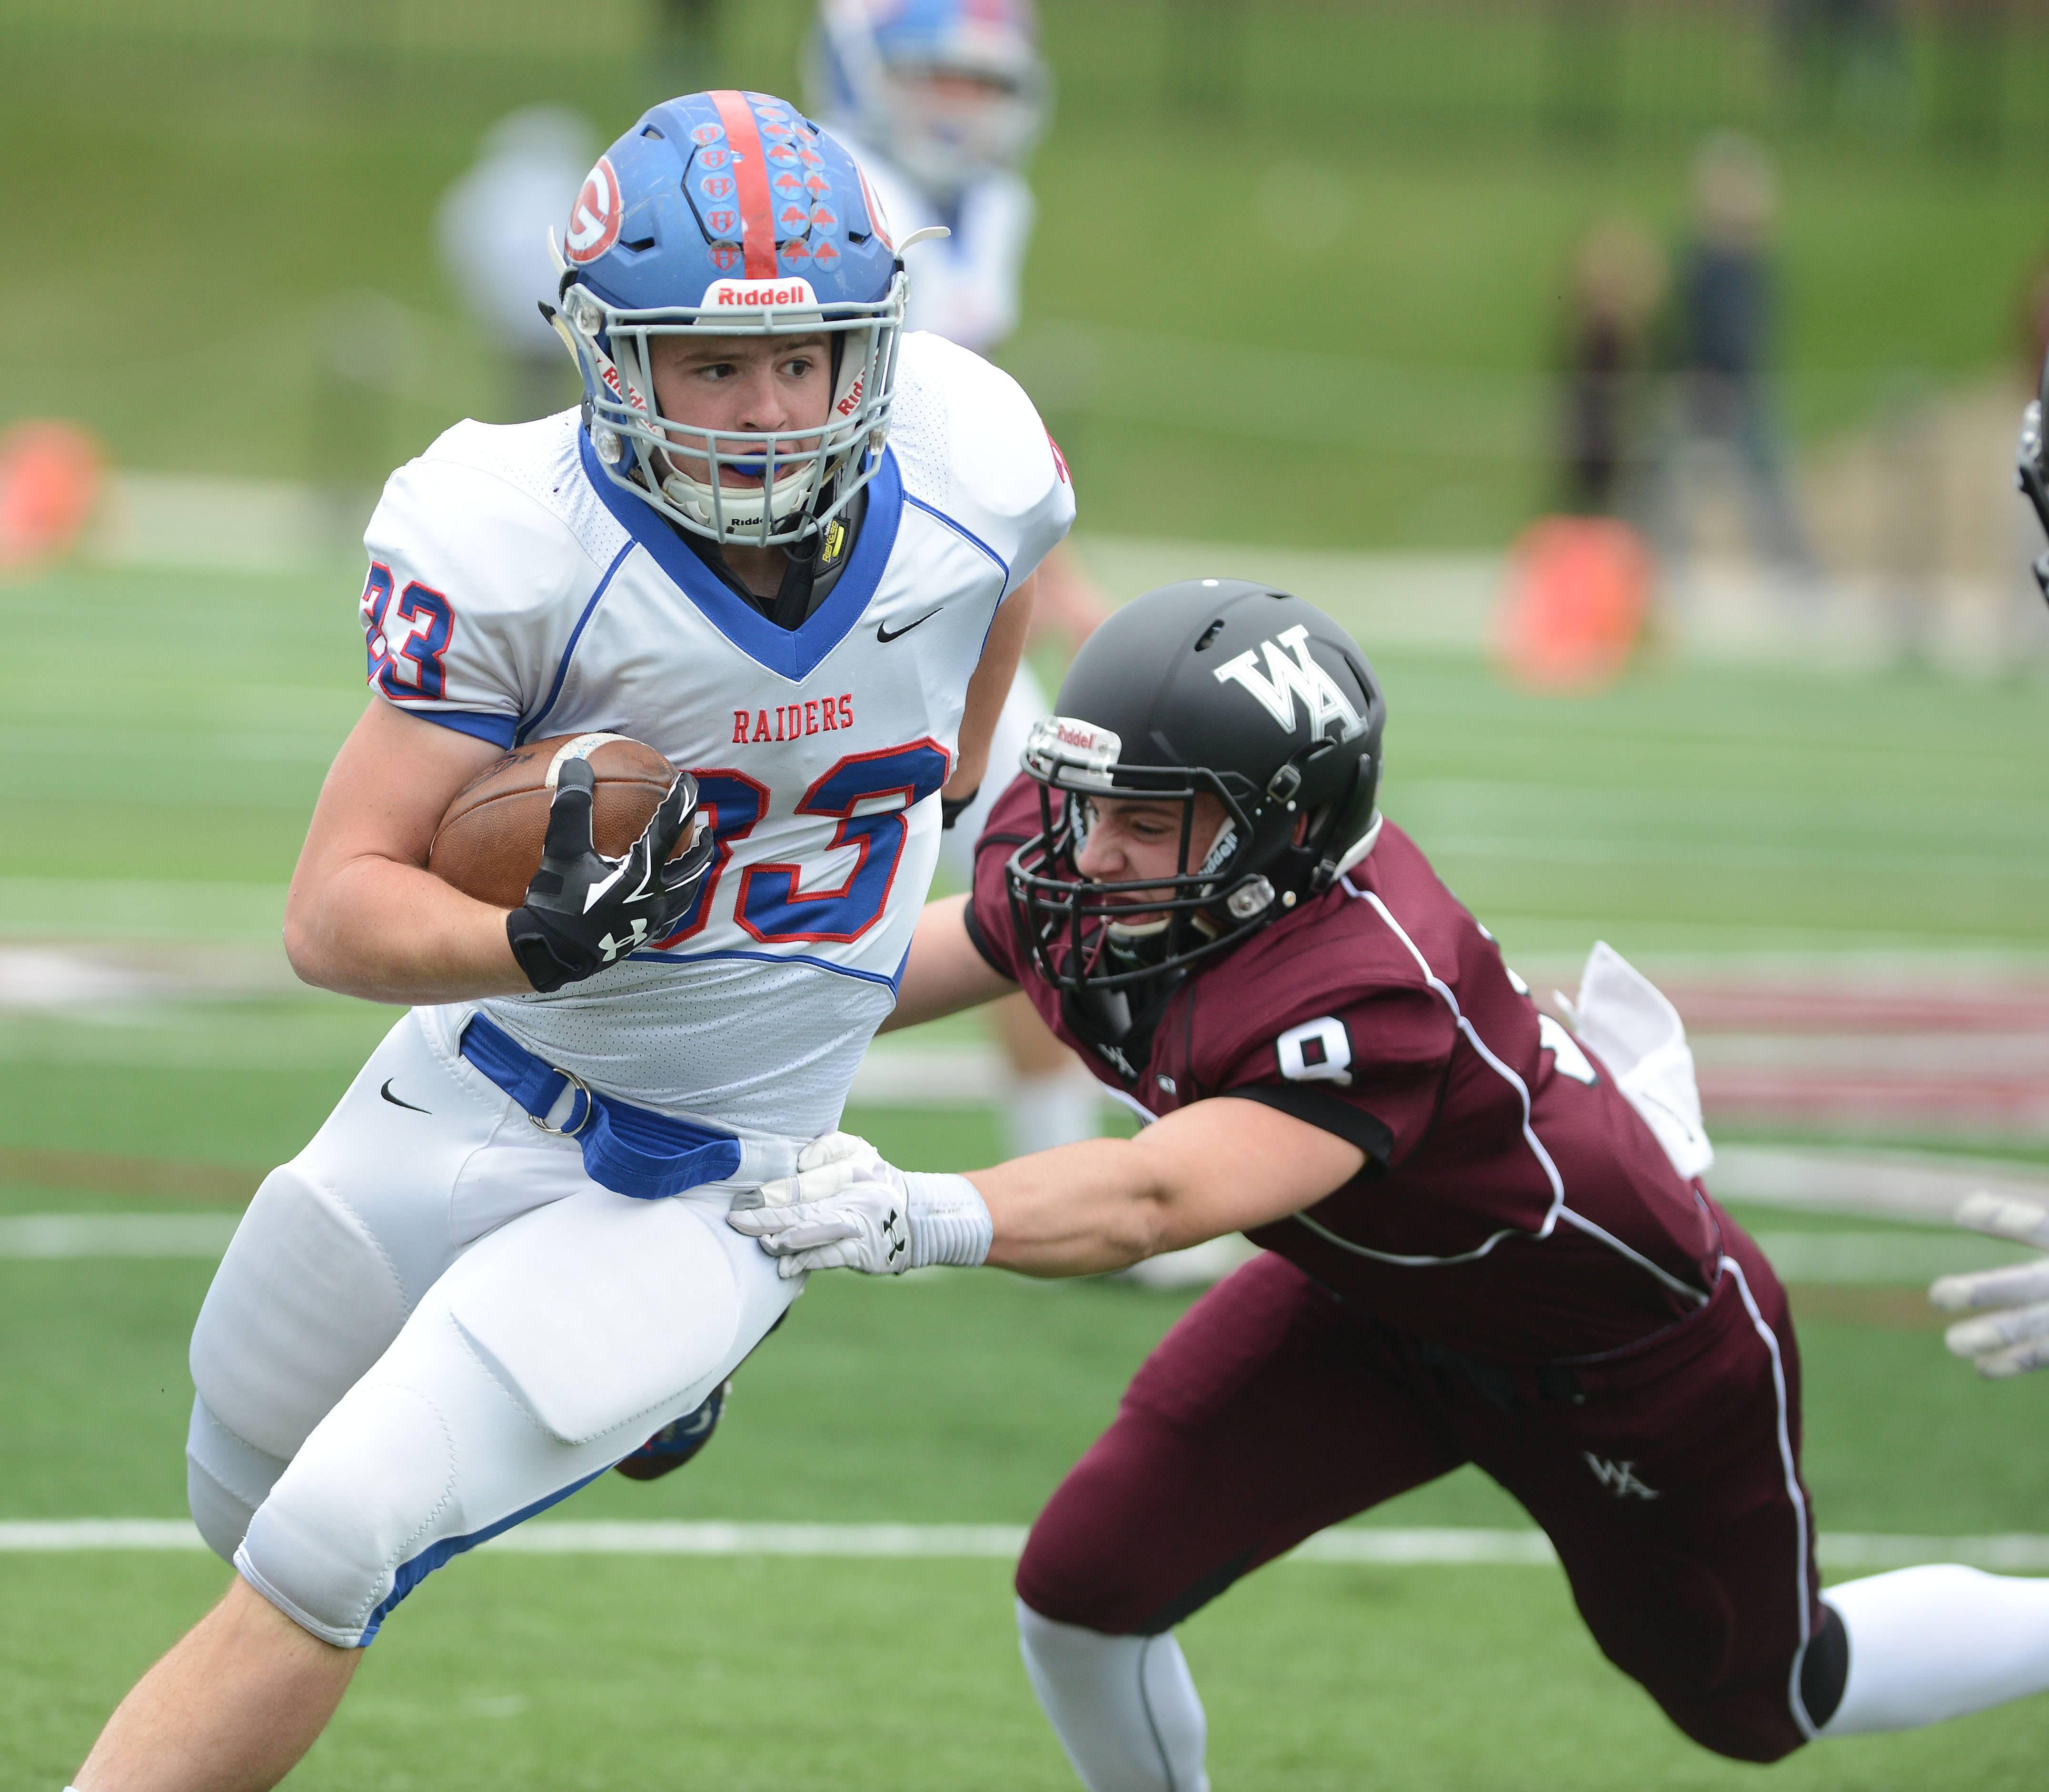 Sean Cooke of Glenbard South out runs Kordell Bowling of Wheaton Academy during the Glenbard South at Wheaton Academy football game Saturday.